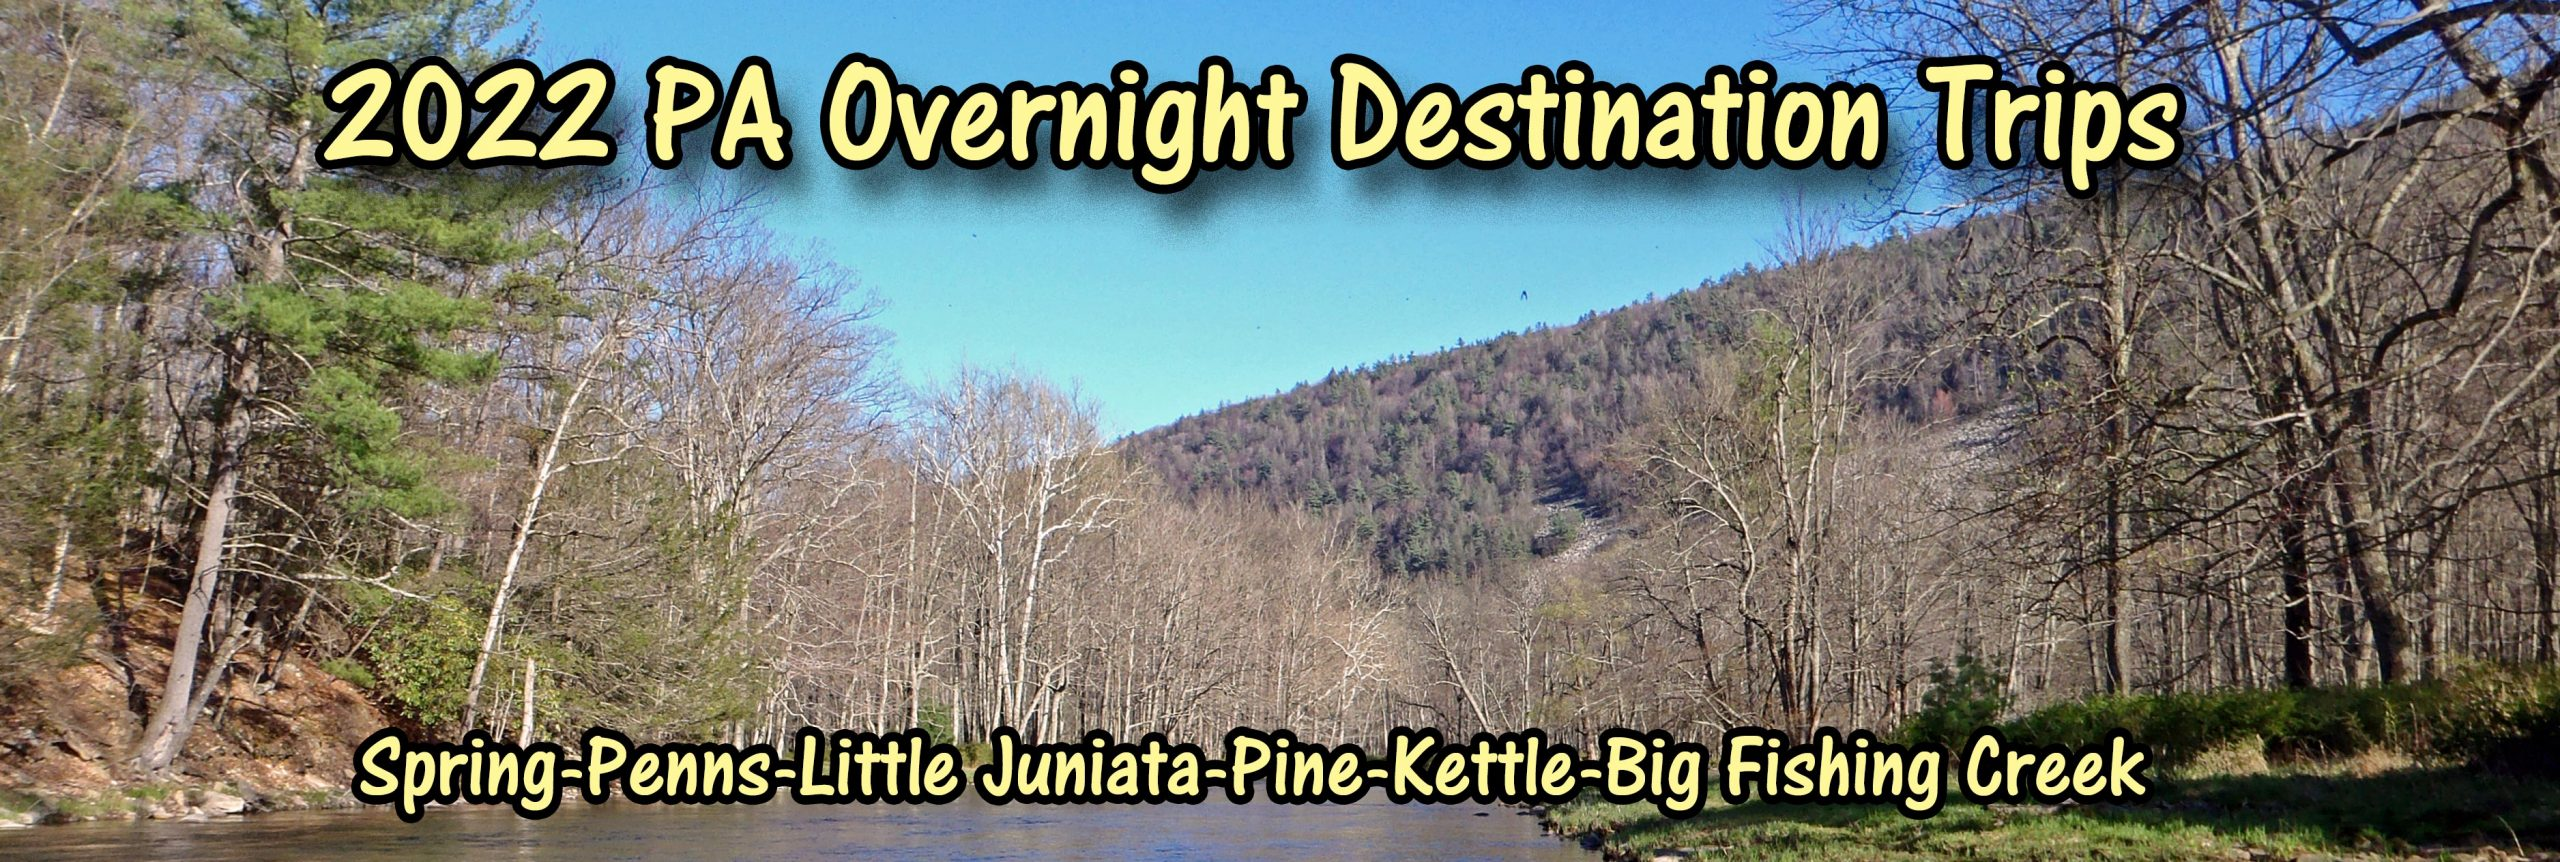 Join Us On One Of Our Overnight Packaged Trips To The Best Fishing And Best Hatches In Pennsylvania.